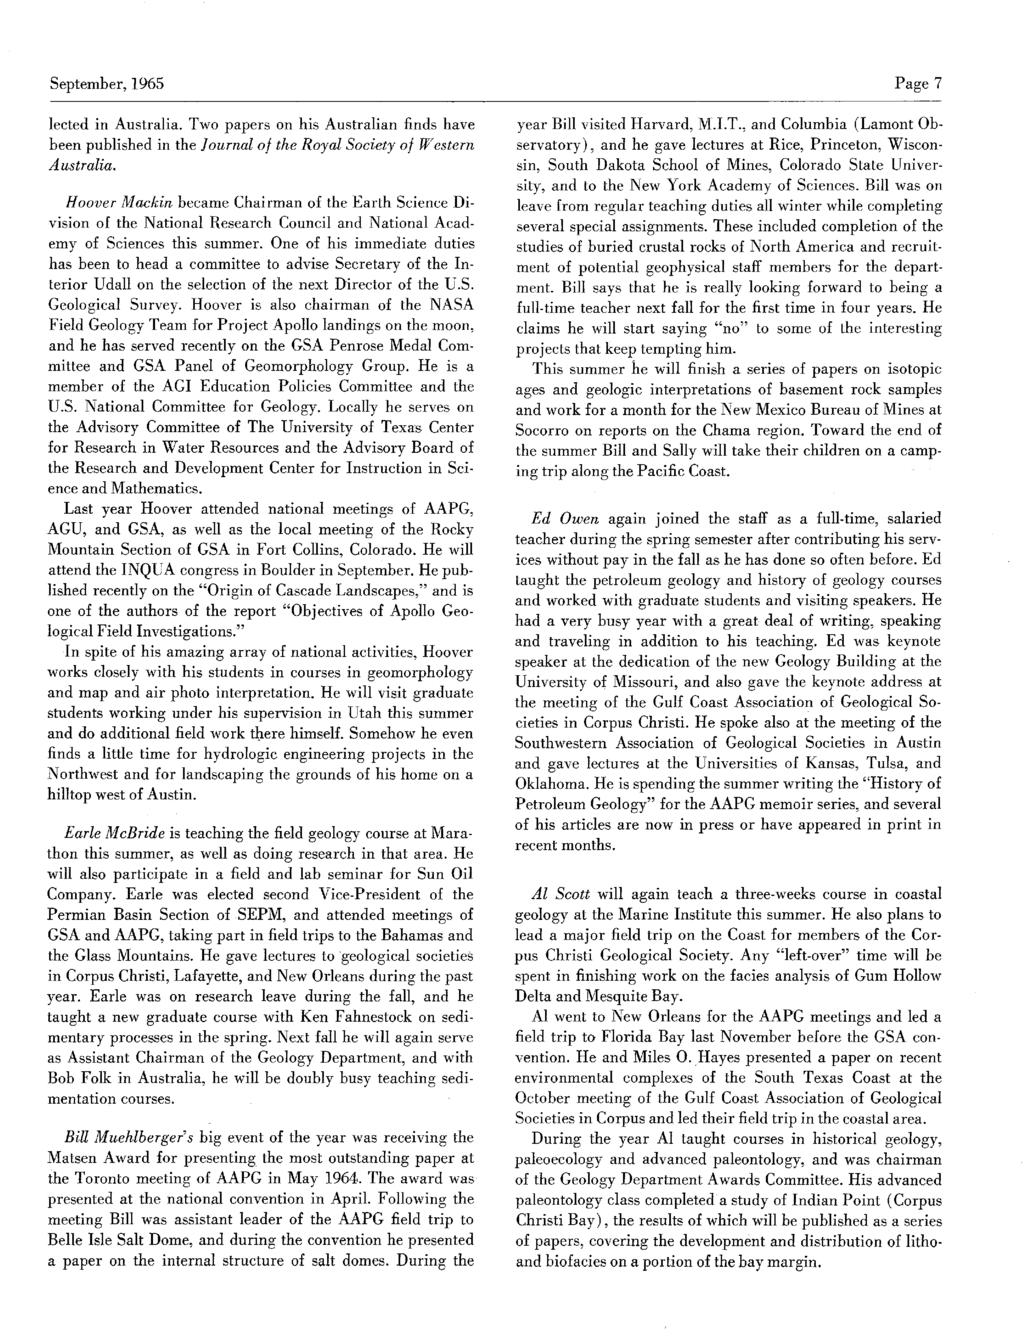 September,1965 Page 7 lected in Australia. Two papers on his Australian finds have been published in the Journal of theroyalsocietyof Western Australia.